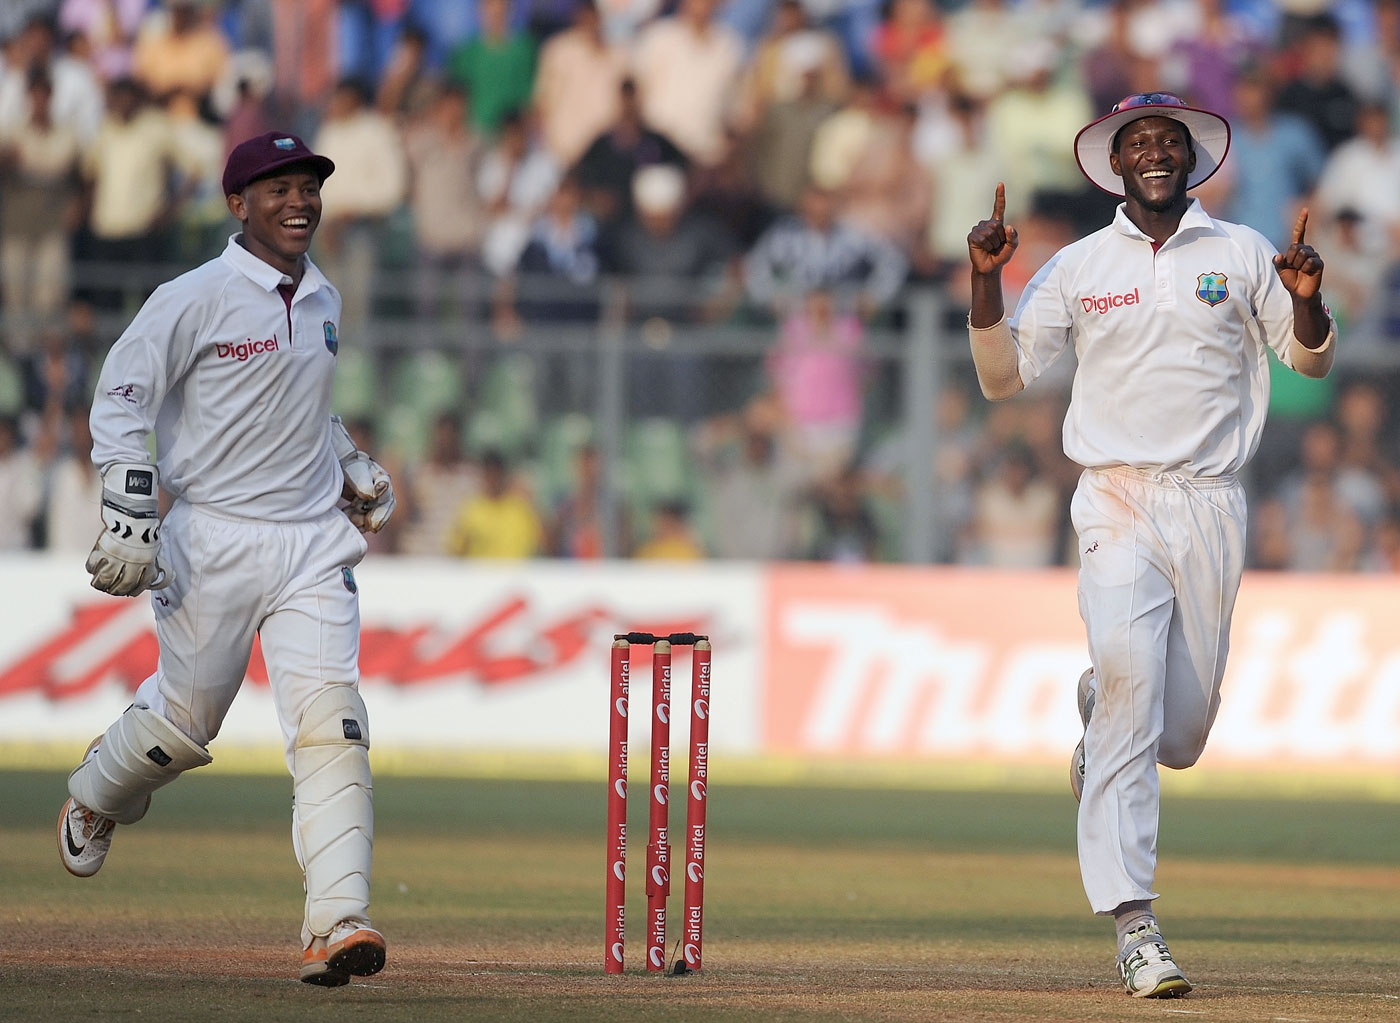 Darren Sammy is happy after saving the Test off the final ball, India v West Indies, 3rd Test, Mumbai, 5th day, November 26, 2011